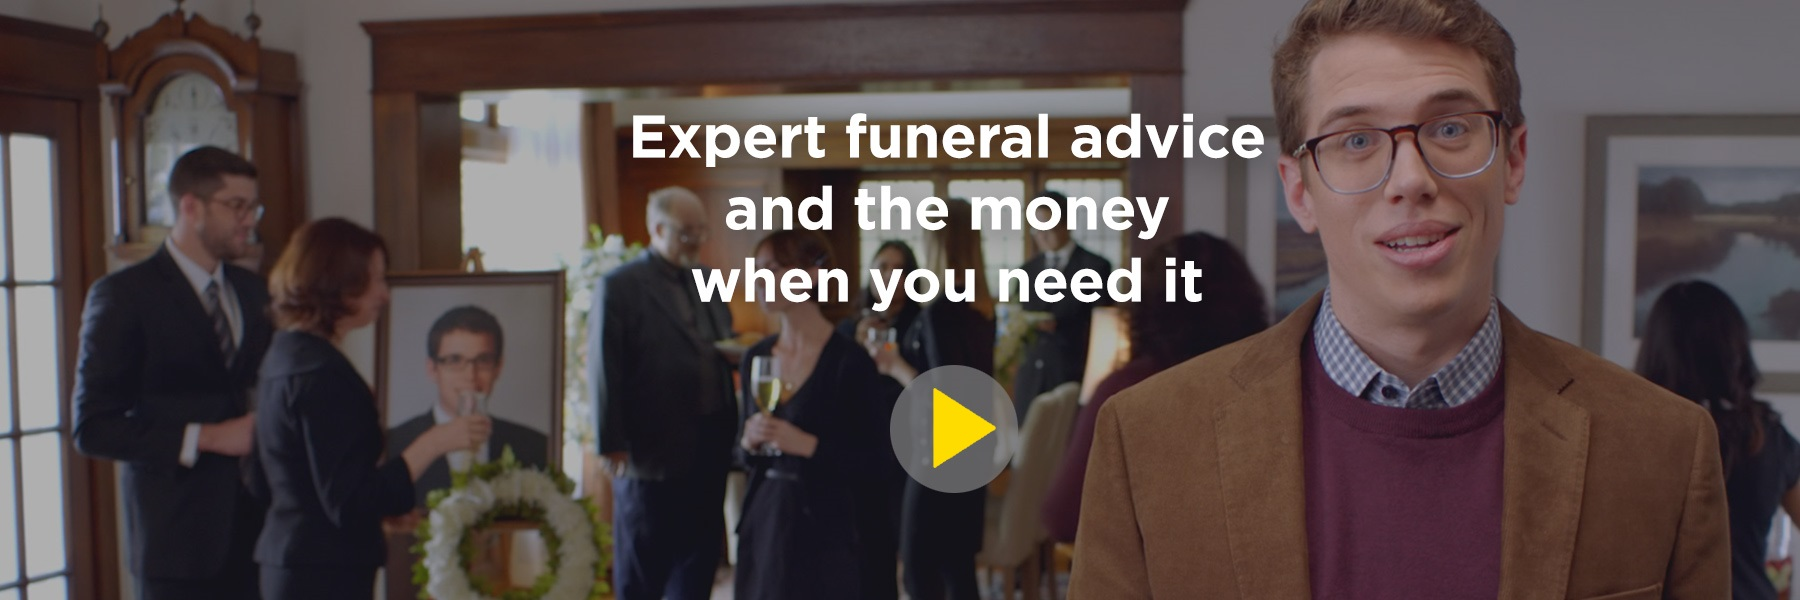 Everest Funeral Whole Life Insurance - Expert funeral advice and the money when you need it